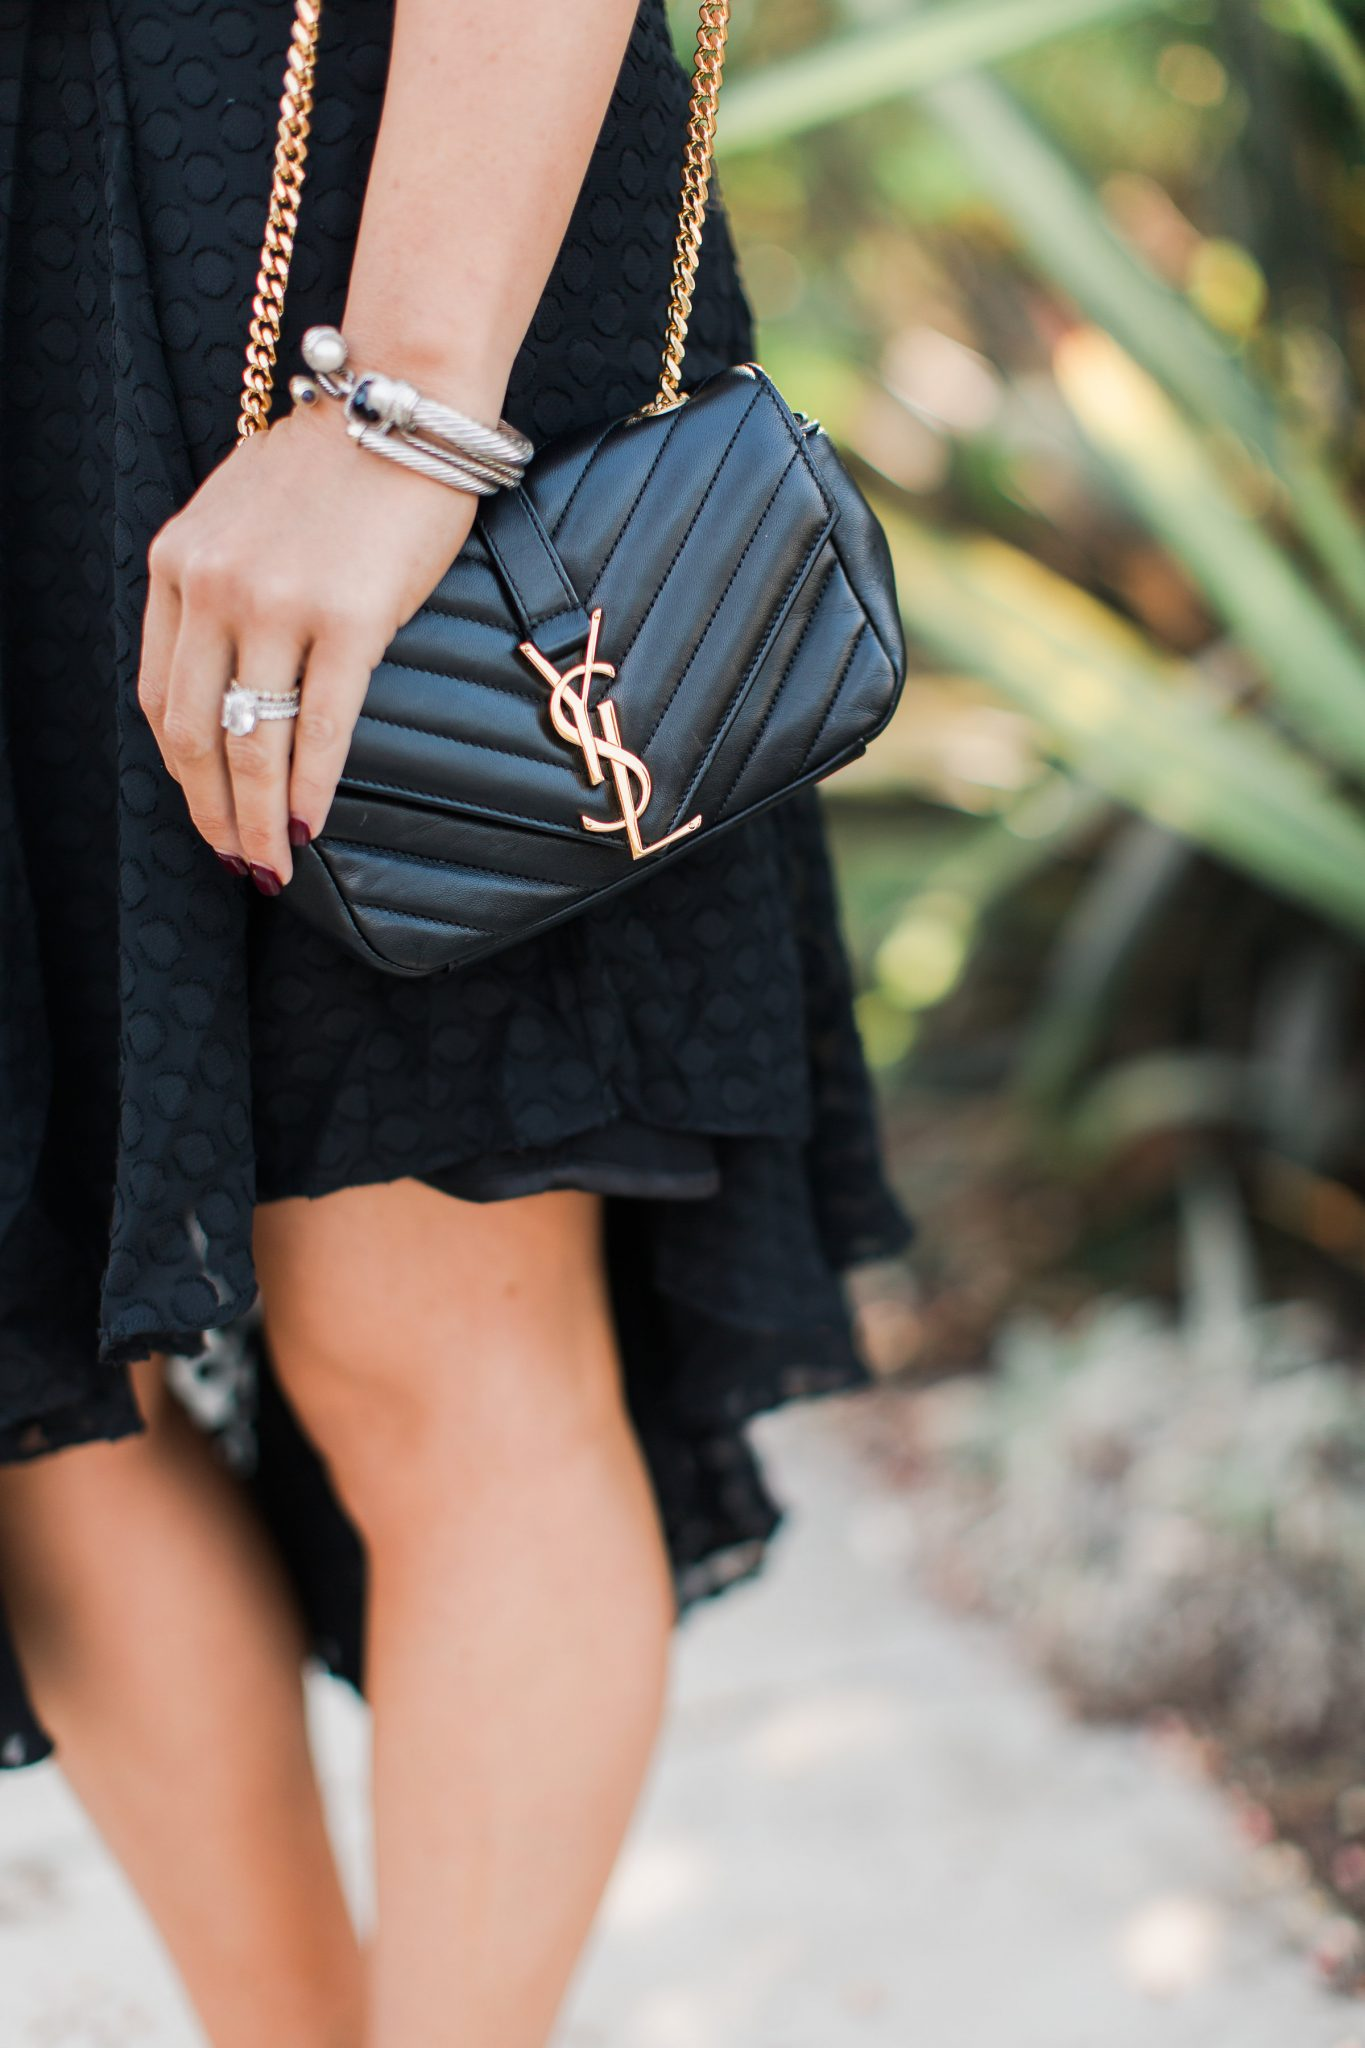 Maxie Elle | Little black dress and YSL bag - Nordstrom Half Yearly Sale Picks & The Perfect LBD by popular Orange County fashion blogger Maxie Elle